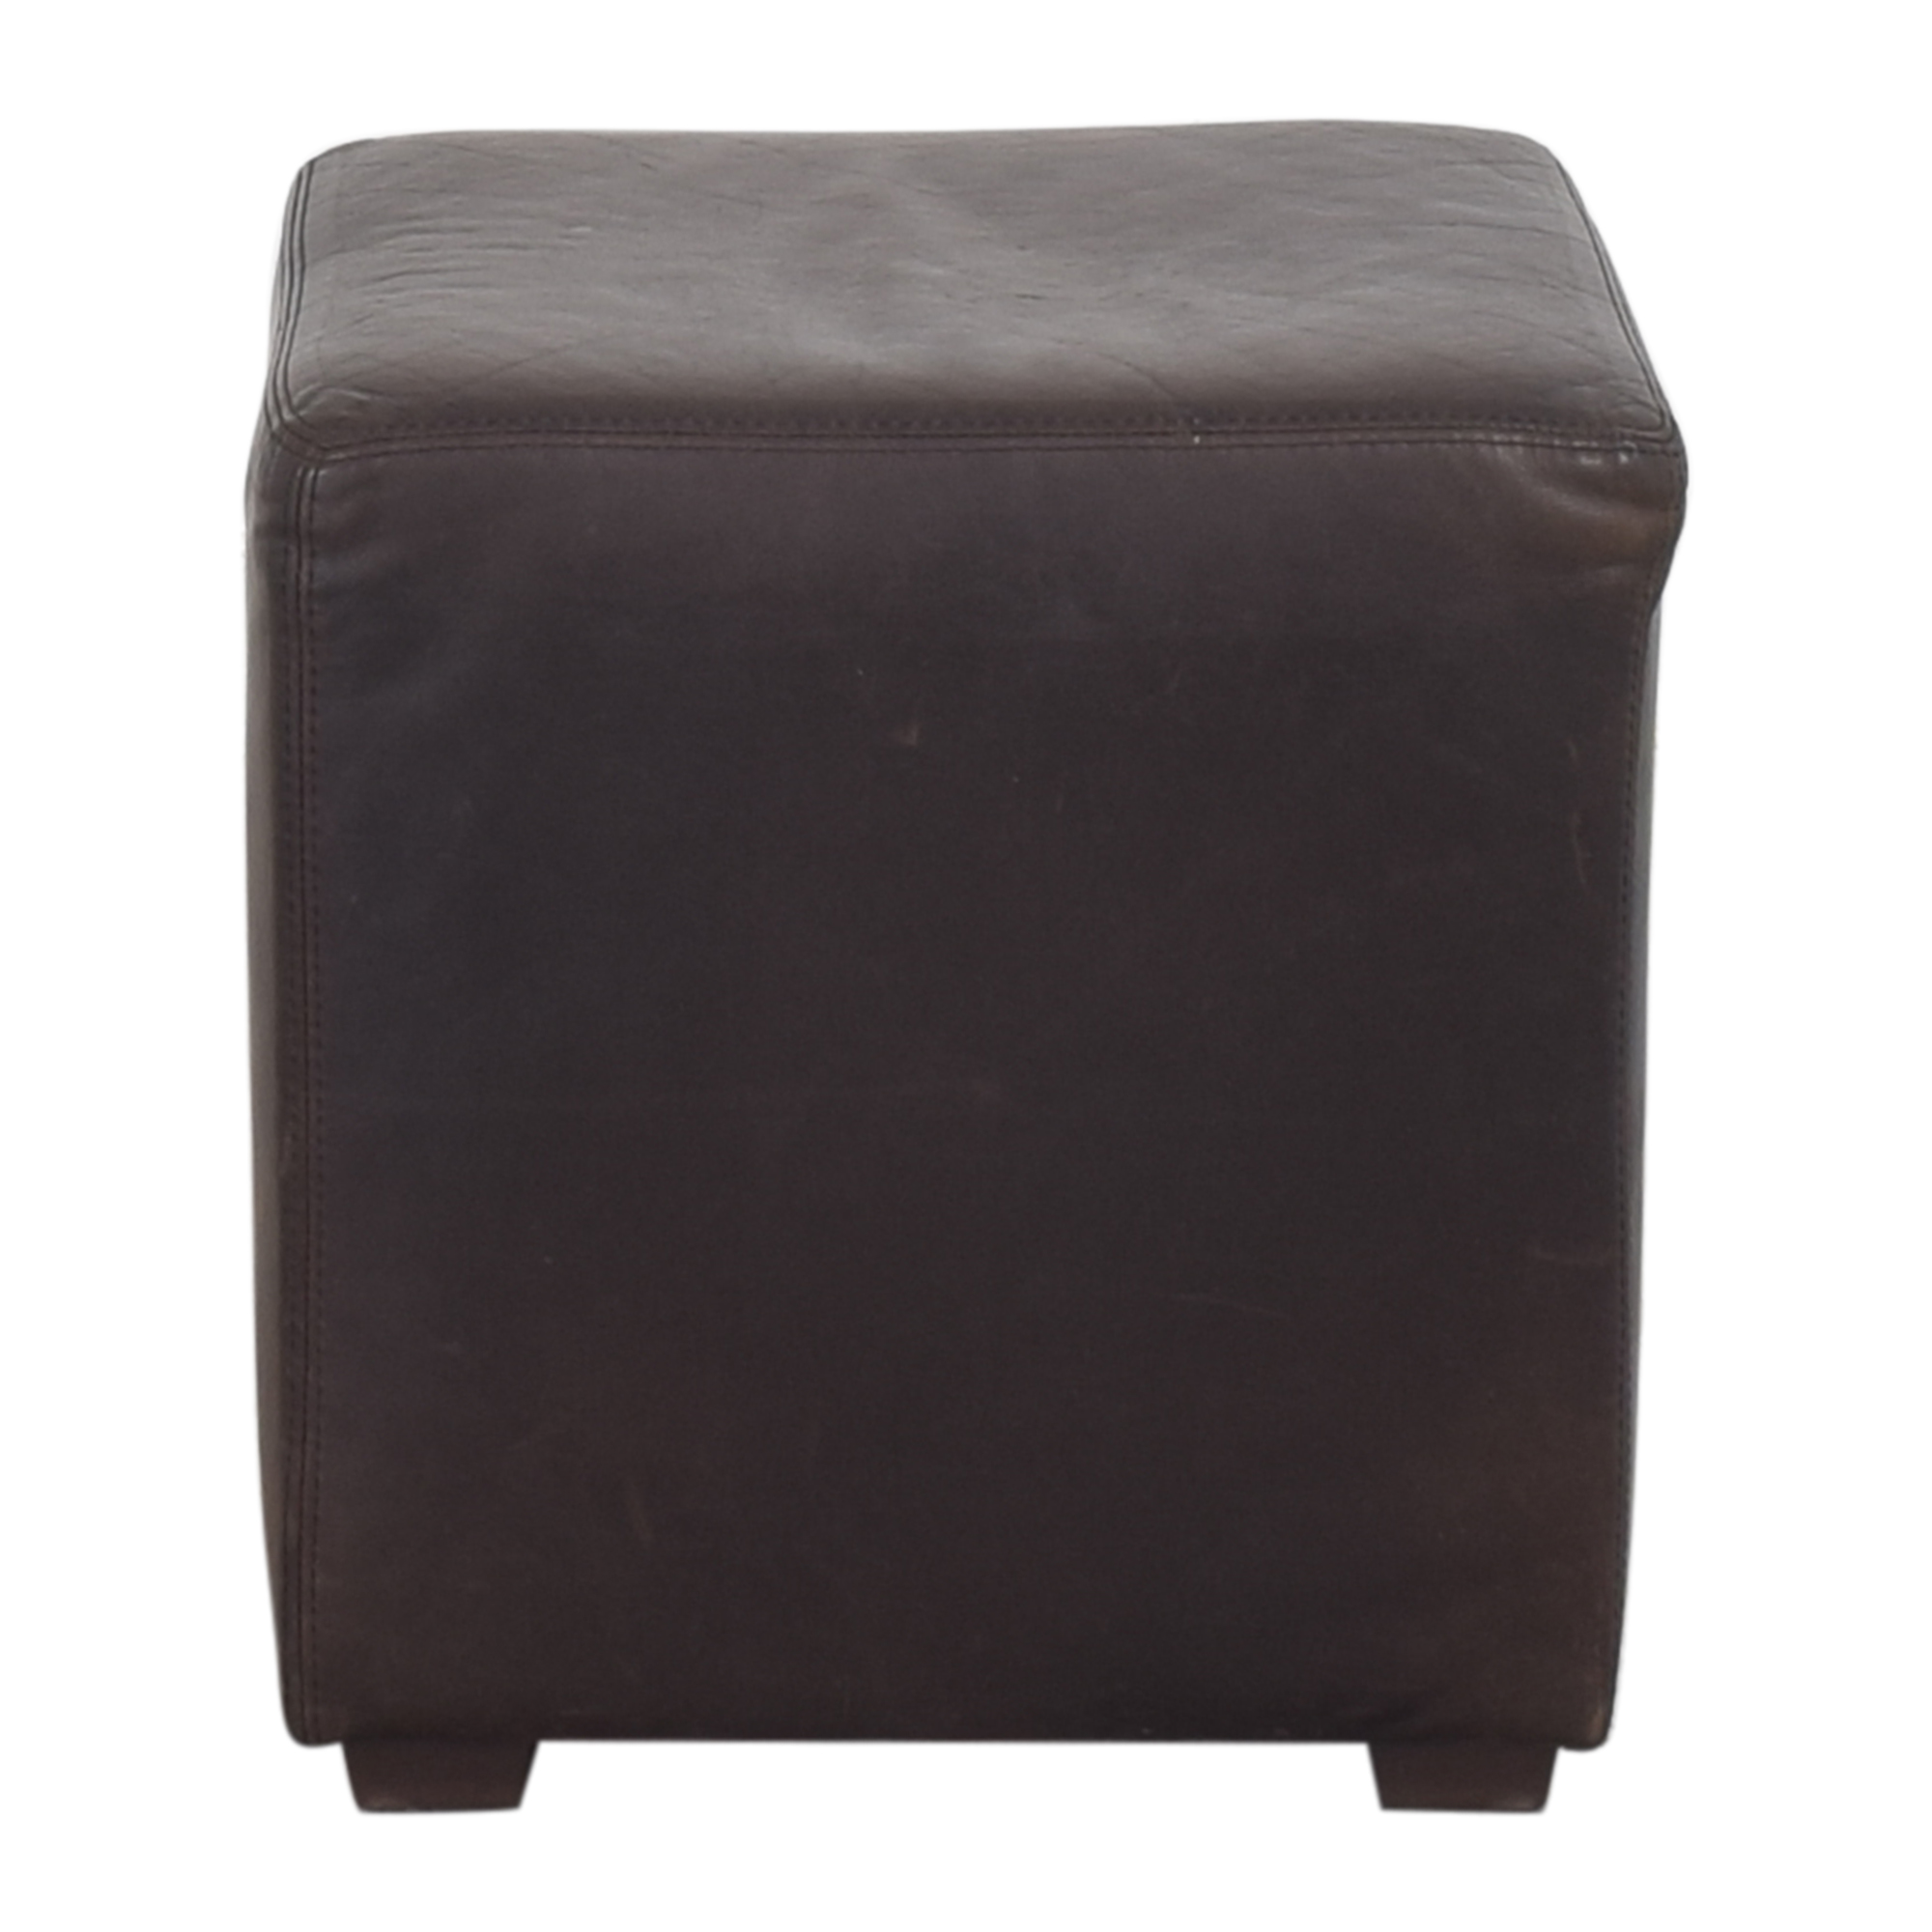 Mitchell Gold + Bob Williams Mitchell Gold + Bob Williams Franny Square Ottoman